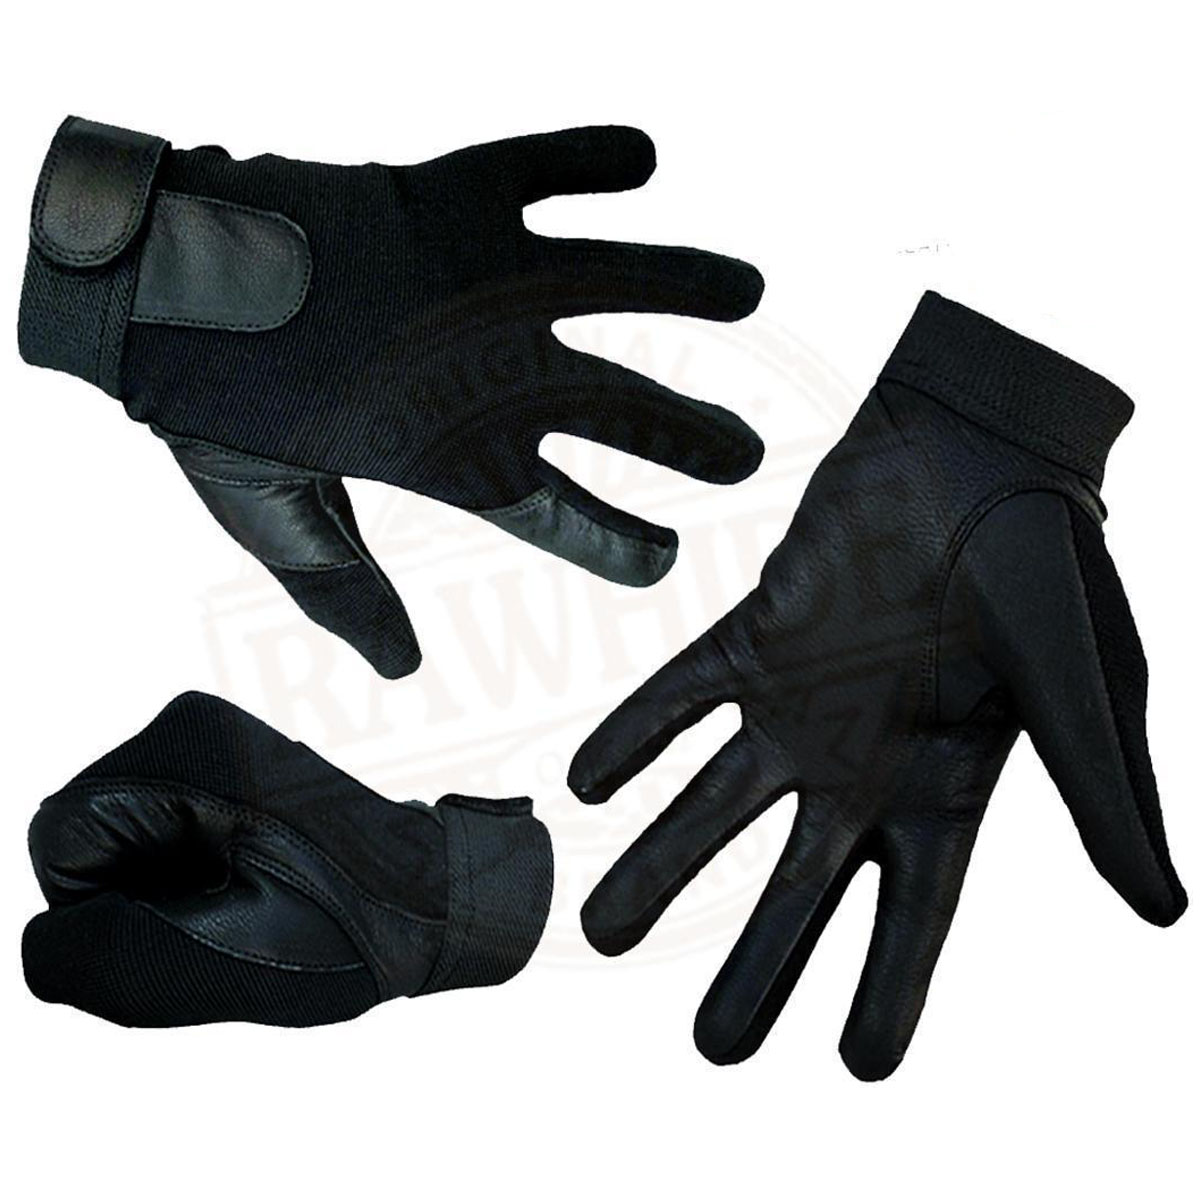 Driving gloves yahoo answers - Sale Products